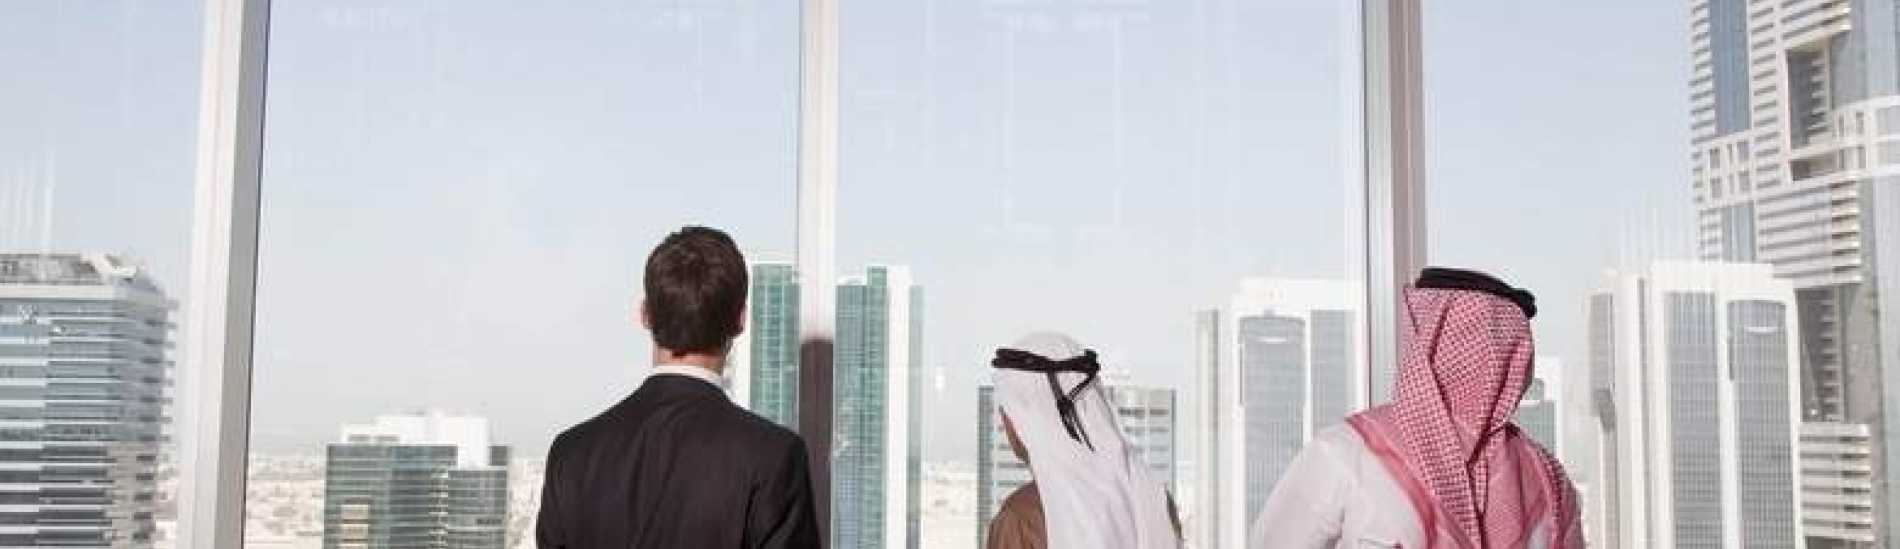 Khaleej Times - Selling your home in Dubai? Here's what you need to do